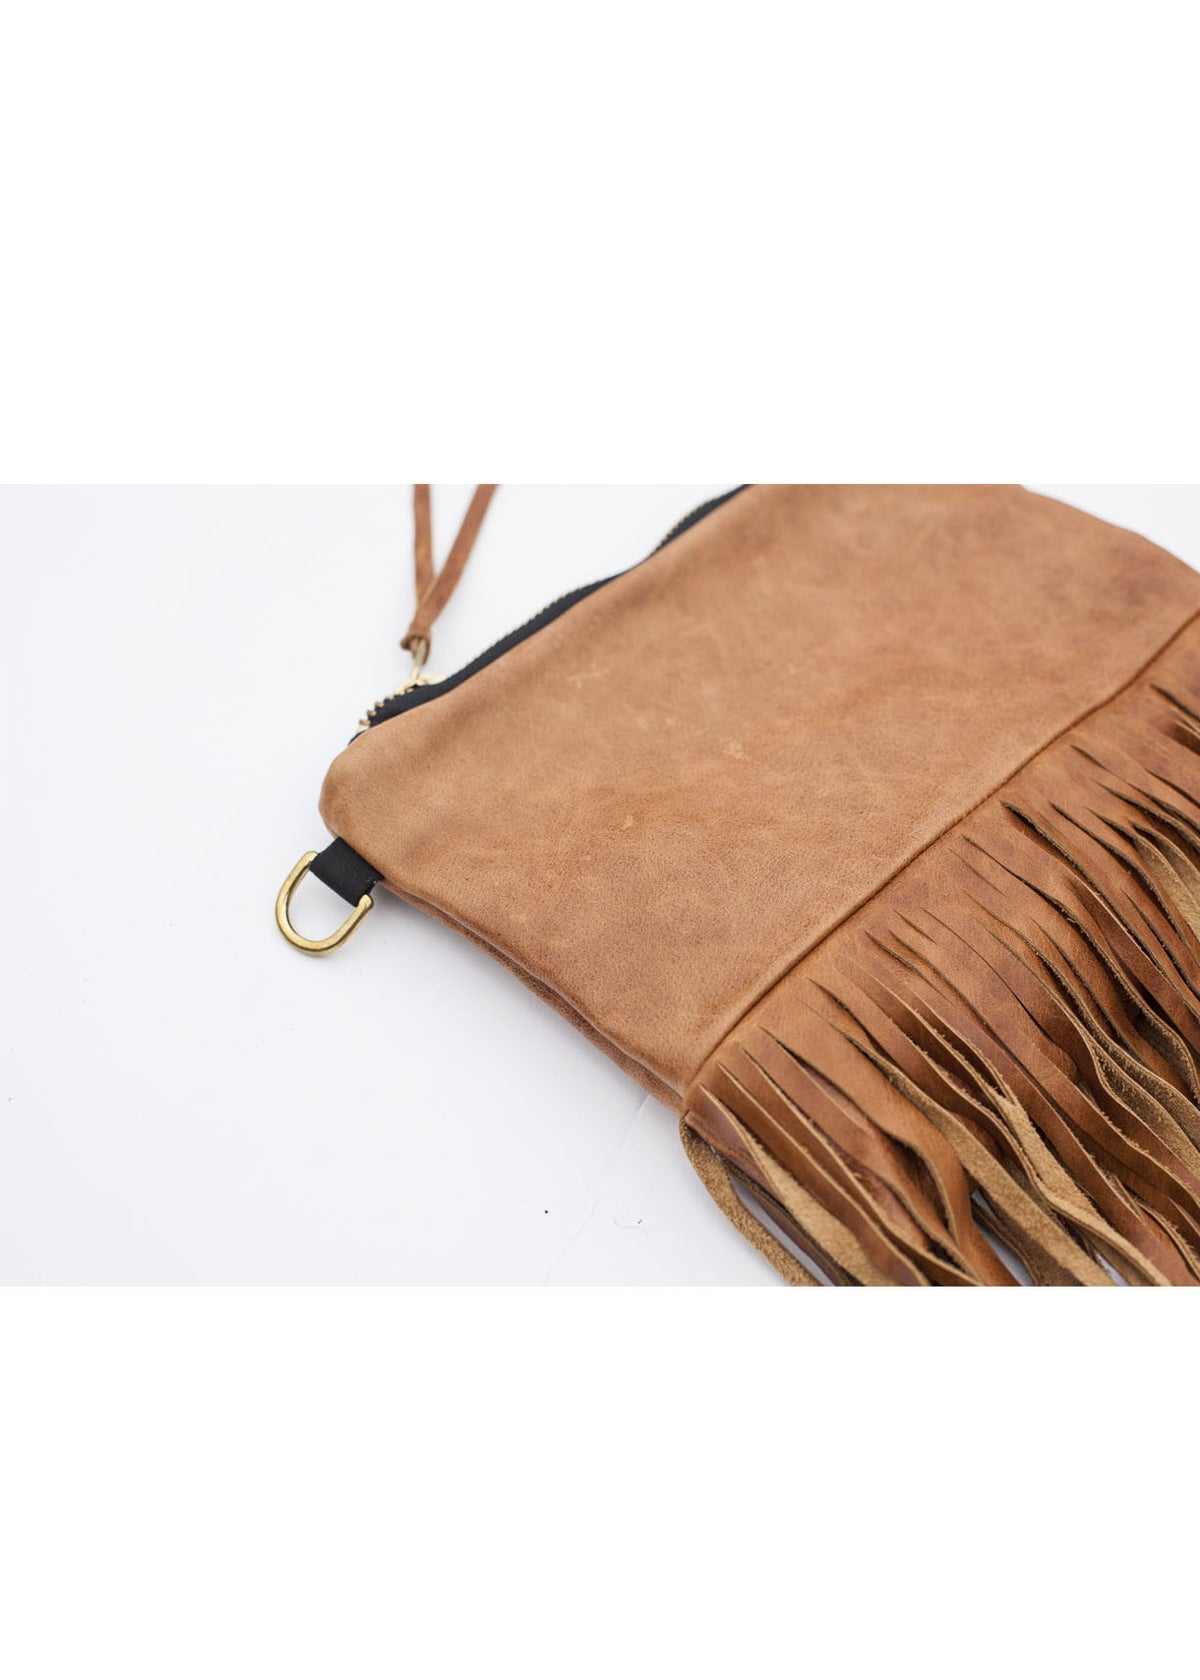 The Vida Crossbody - Koko Double Fringe - Rais Case - Image 3